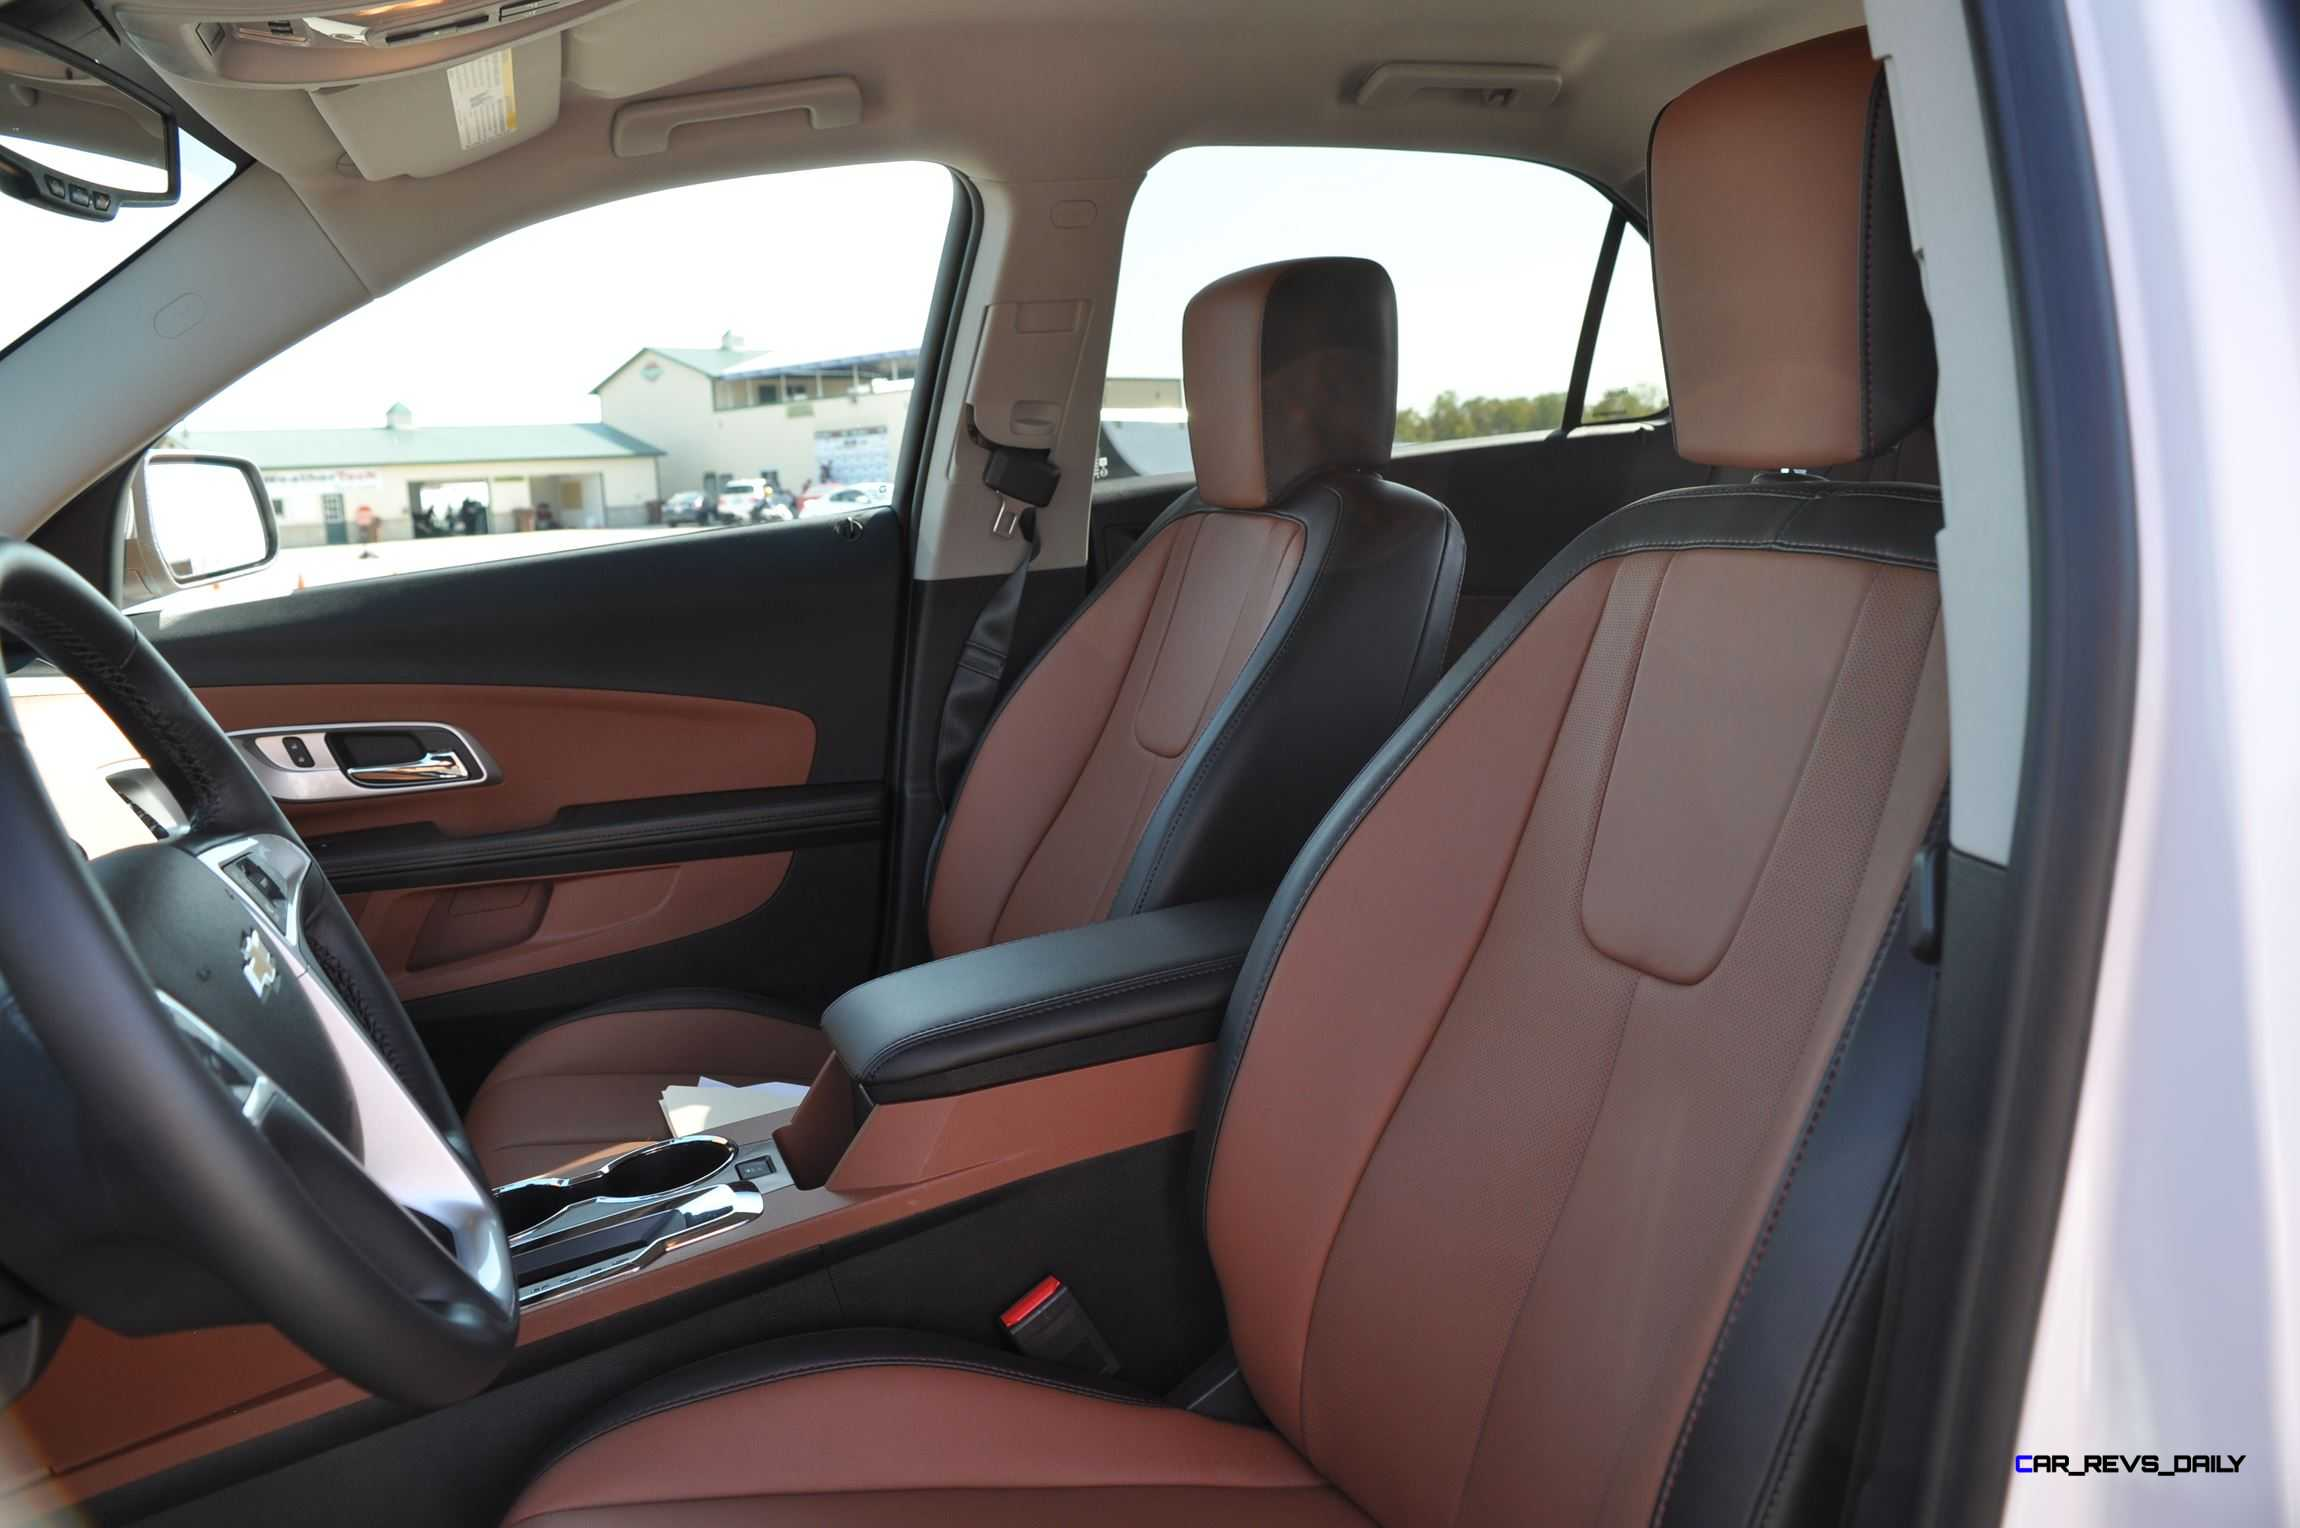 2016 Chevrolet Equinox Ltz Interior Saddle Brown 3